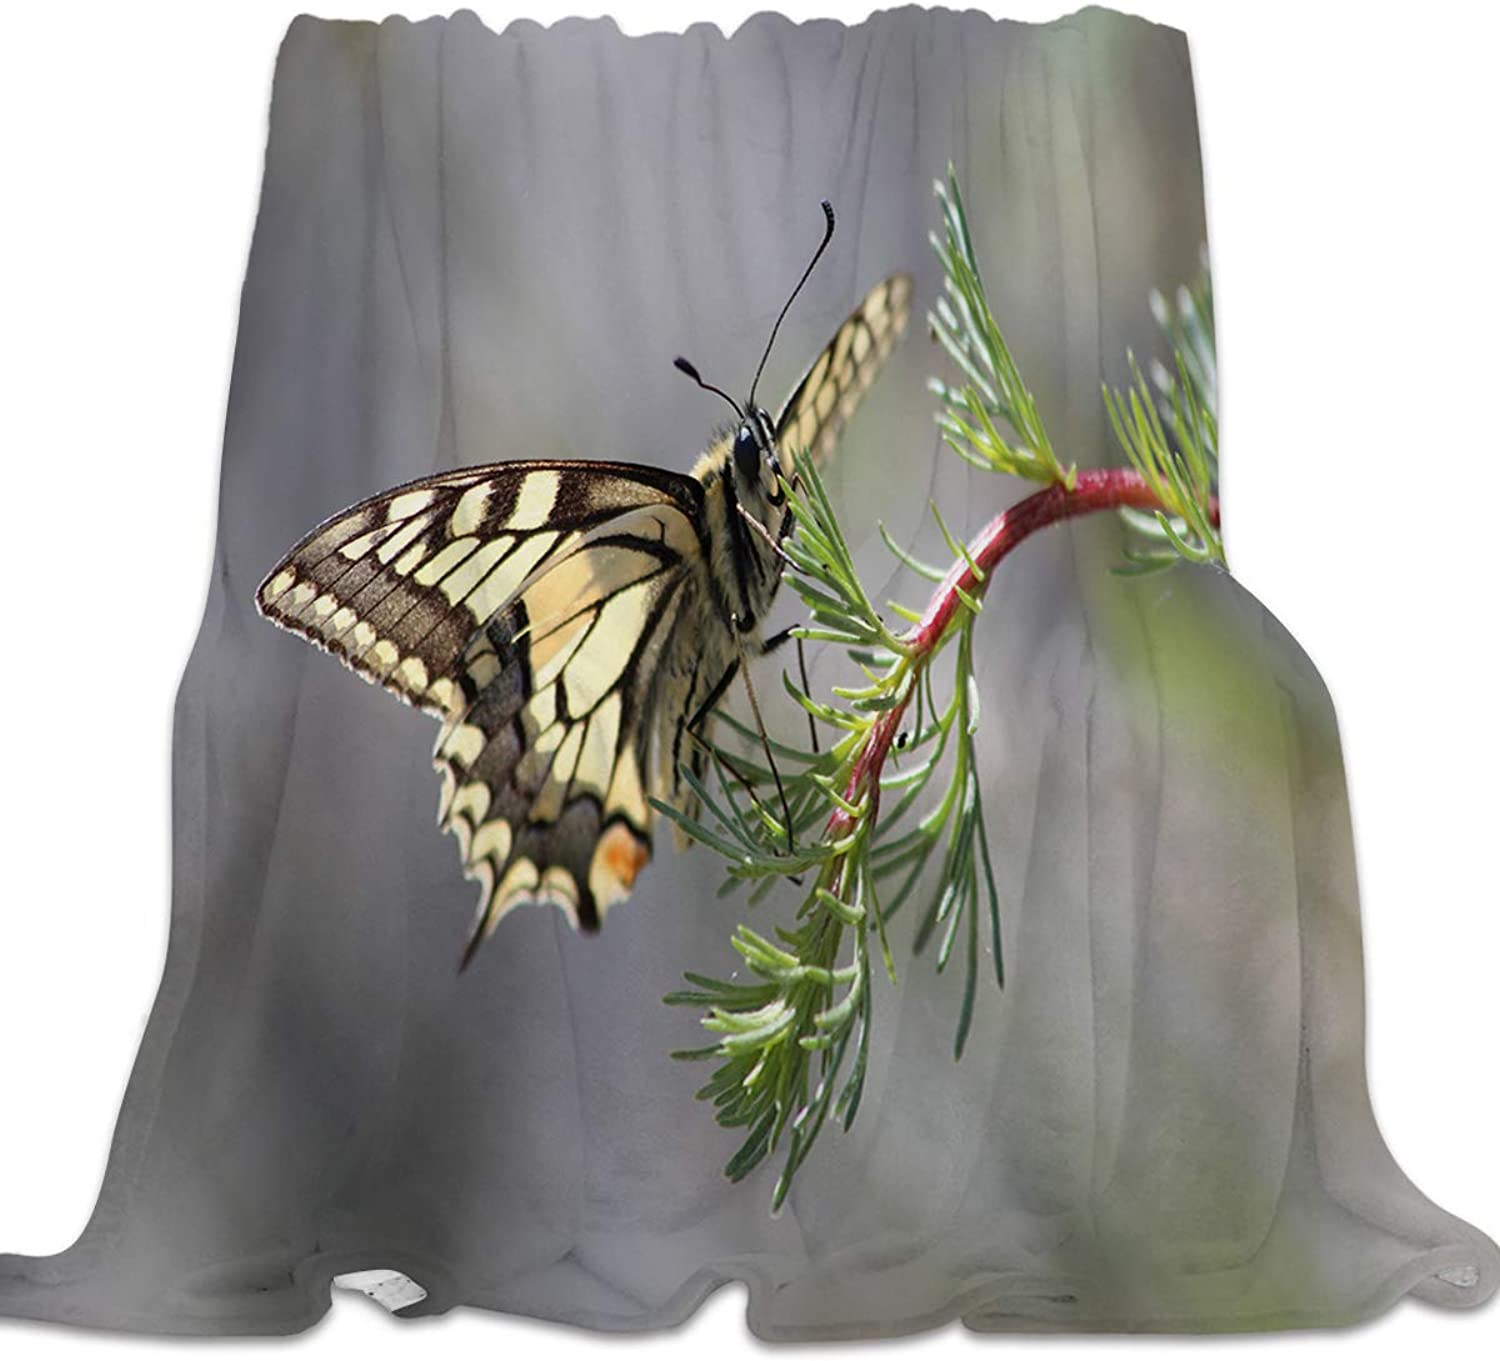 Clouday Flannel Fleece Bed Blanket Warm Throw-Blankets for Girls Boys,Cozy Lightweight Blankets for Bedroom Living Room Sofa Couch,Beautiful 3D Butterfly on The Branch Animal Pattern,39x49inch